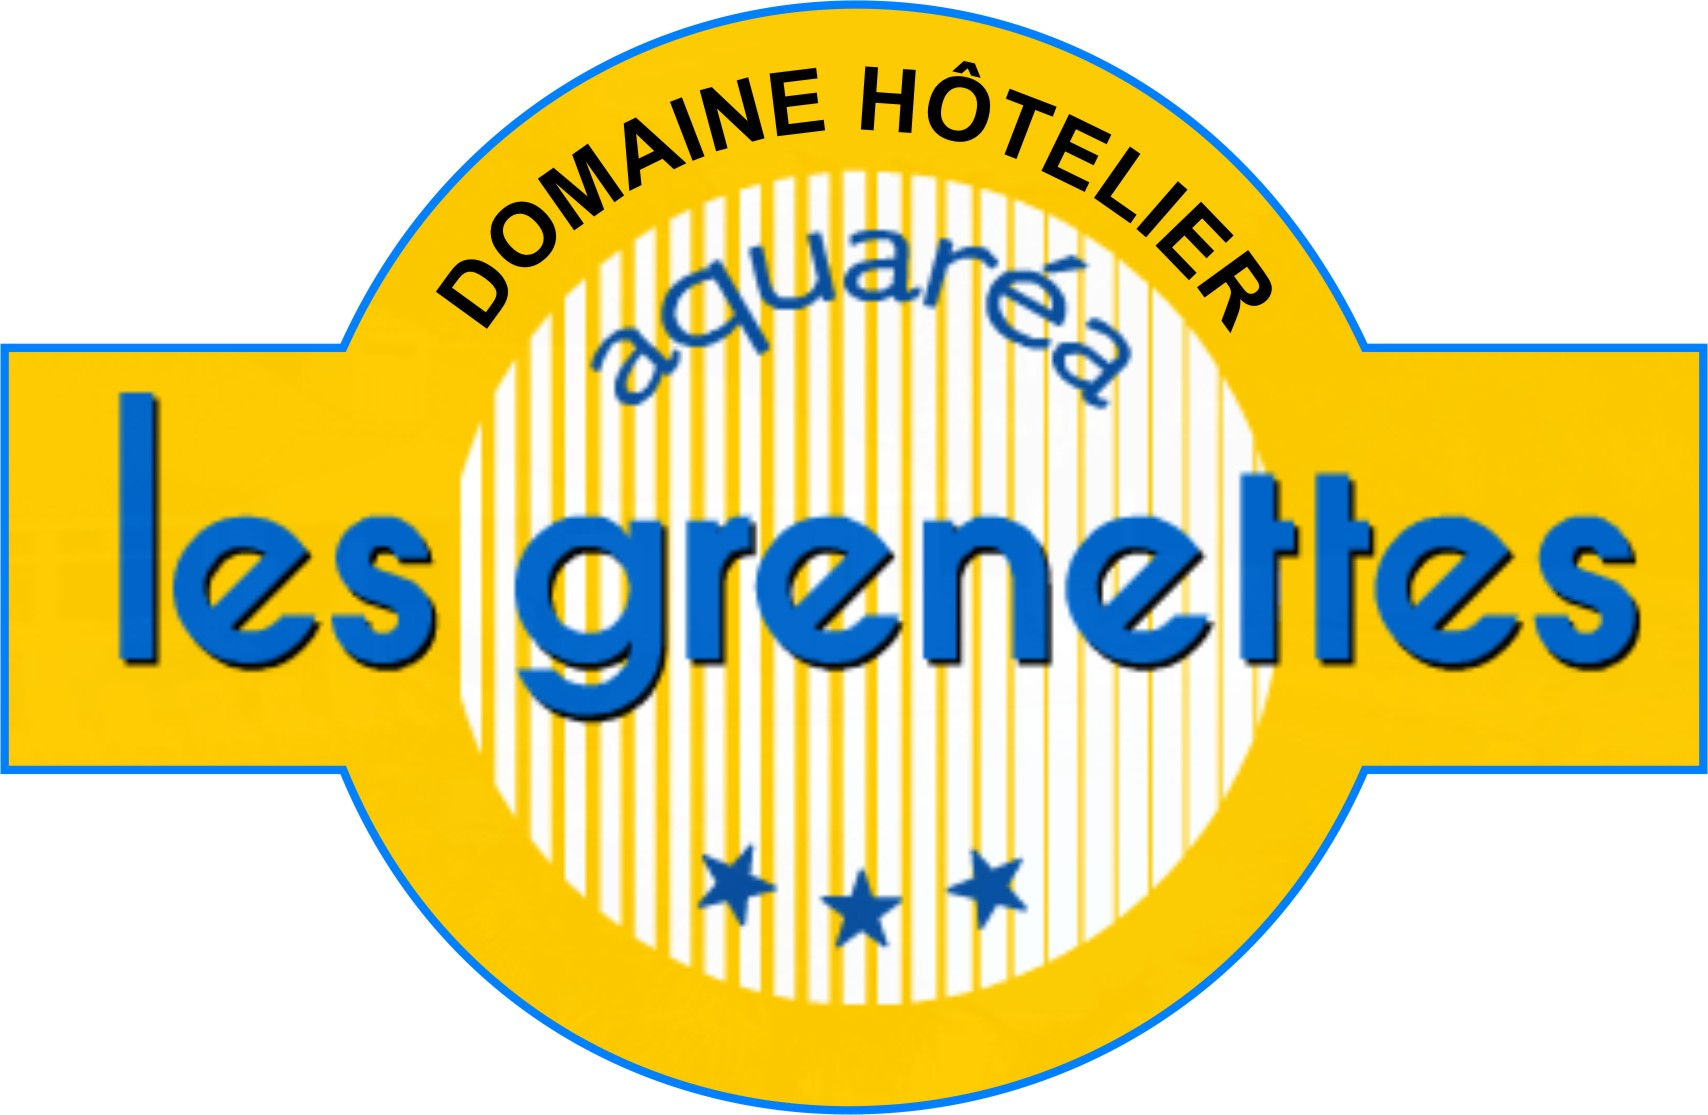 Camping Les Grenettes